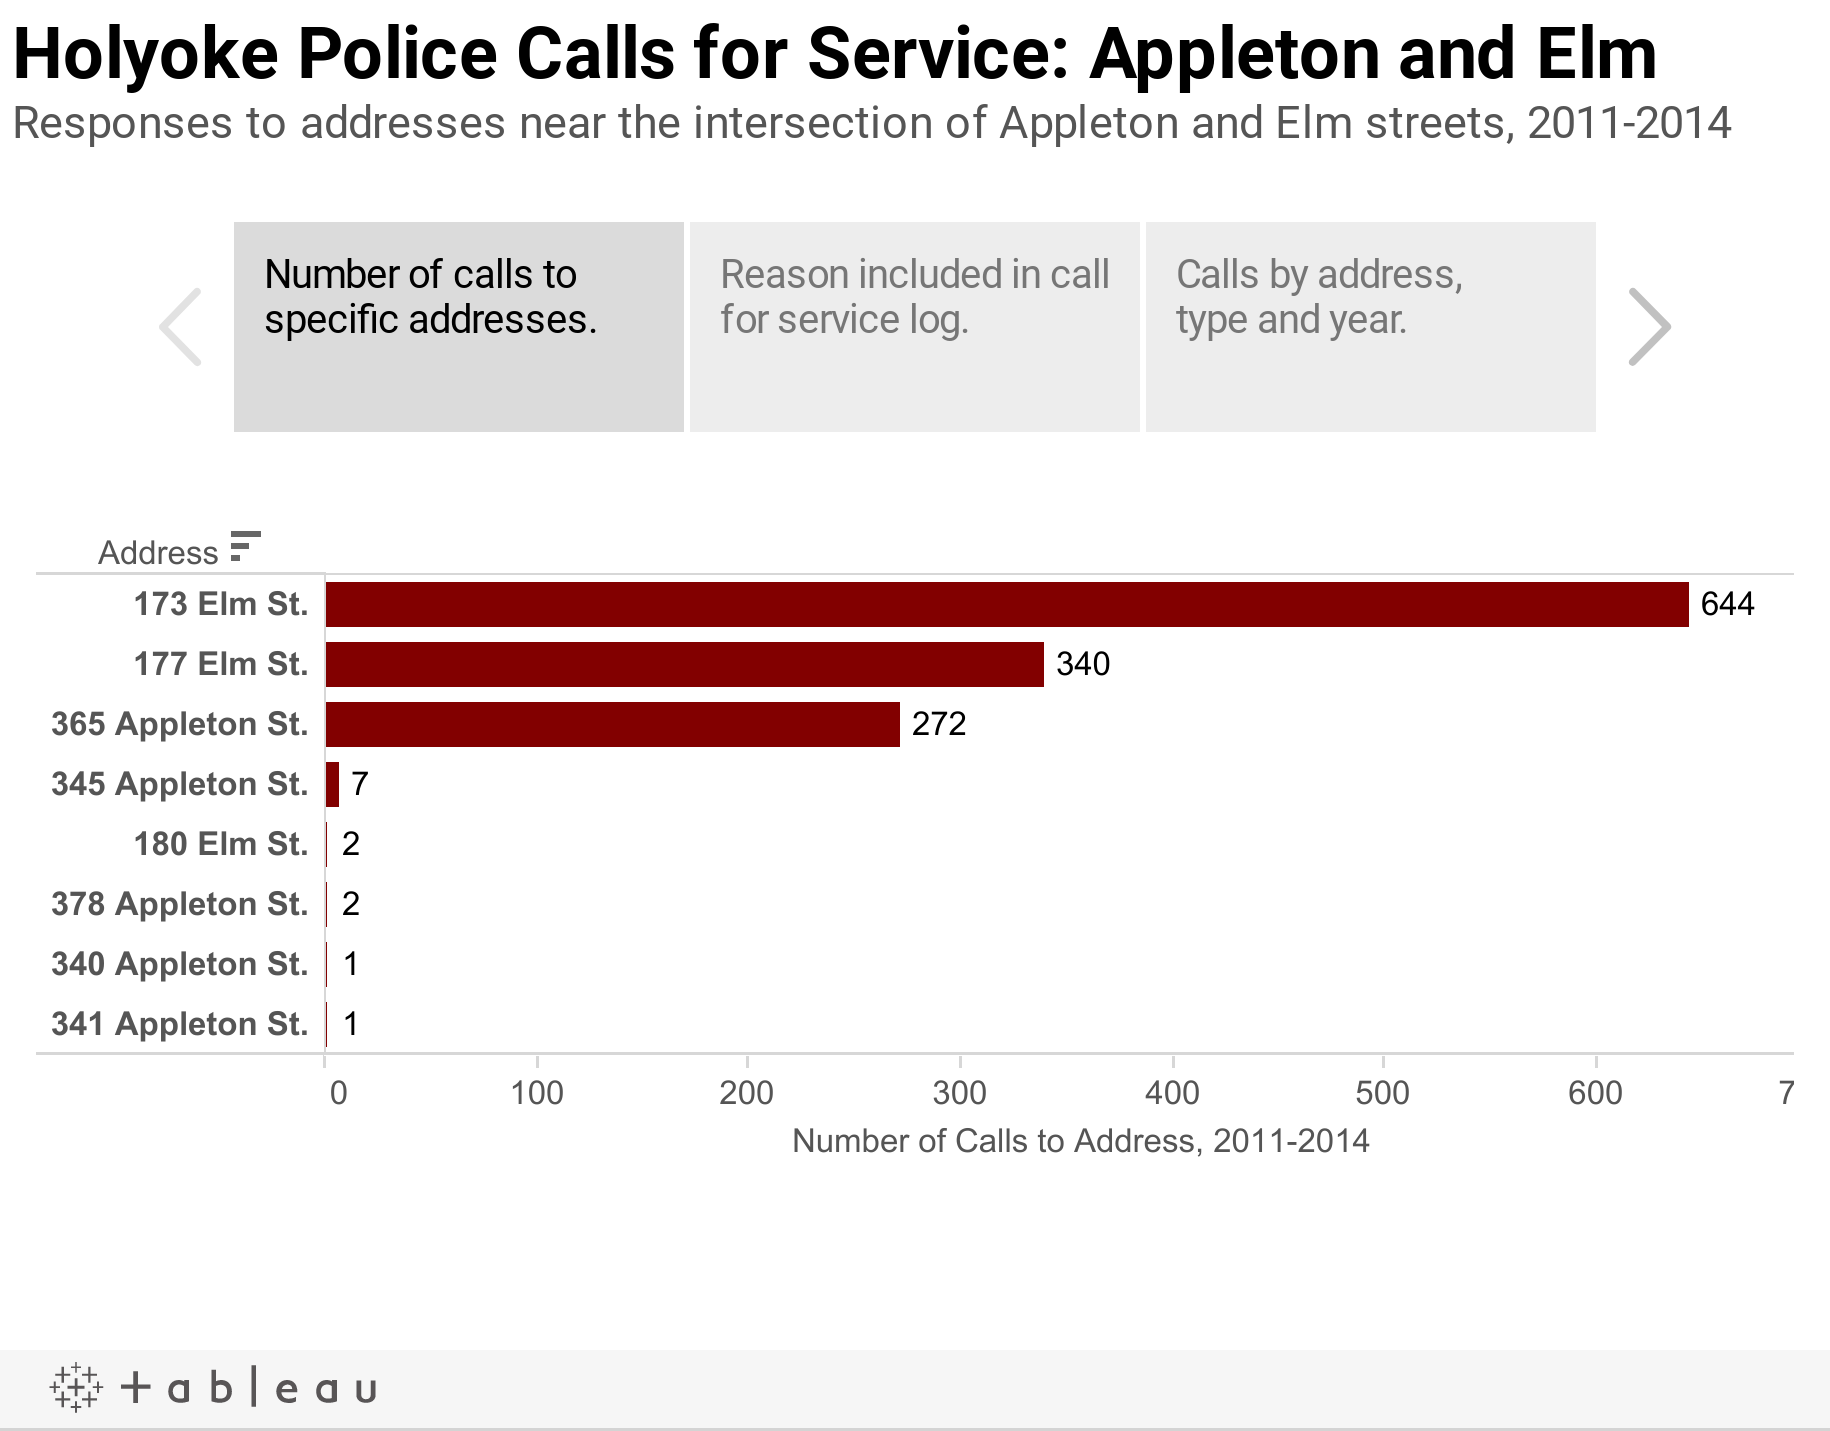 Holyoke Police Calls for Service: Appleton and ElmResponses to addresses near the intersection of Appleton and Elm streets, 2011-2014